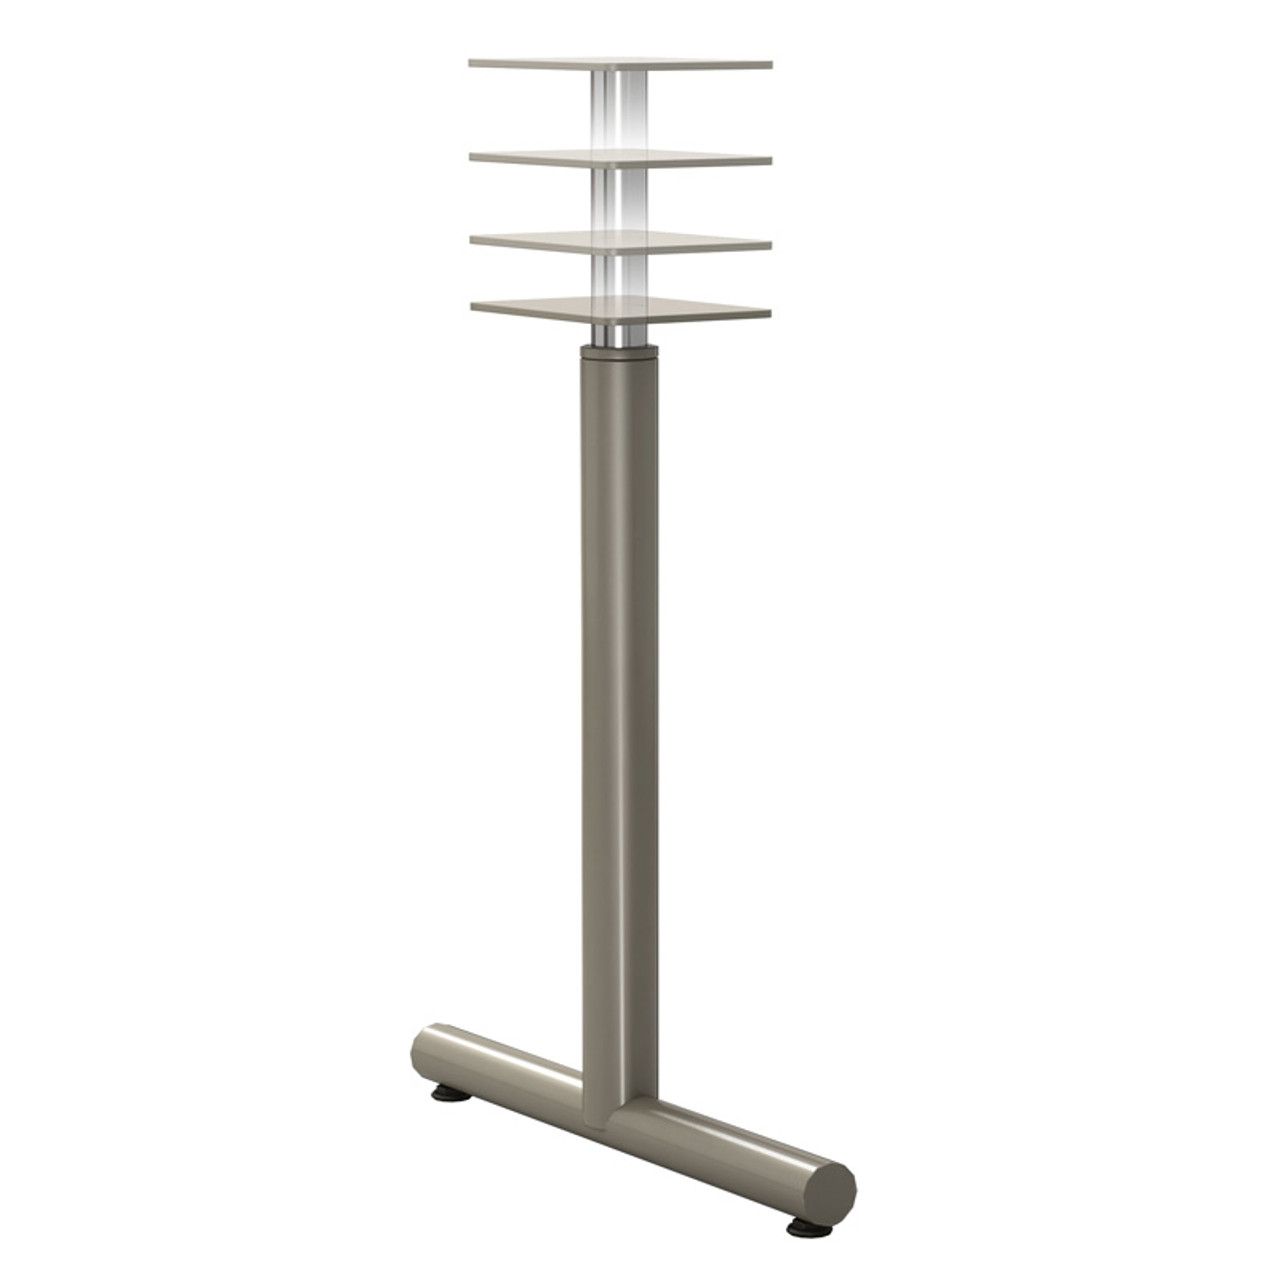 "Adjustable T-style Table Base, 27-3/4"" to 39-3/4"" Height Adjustment, Welded Construction, 2-3/8"" Diameter Column with Adjustable Levelers, single - Replacementtablelegs.com"